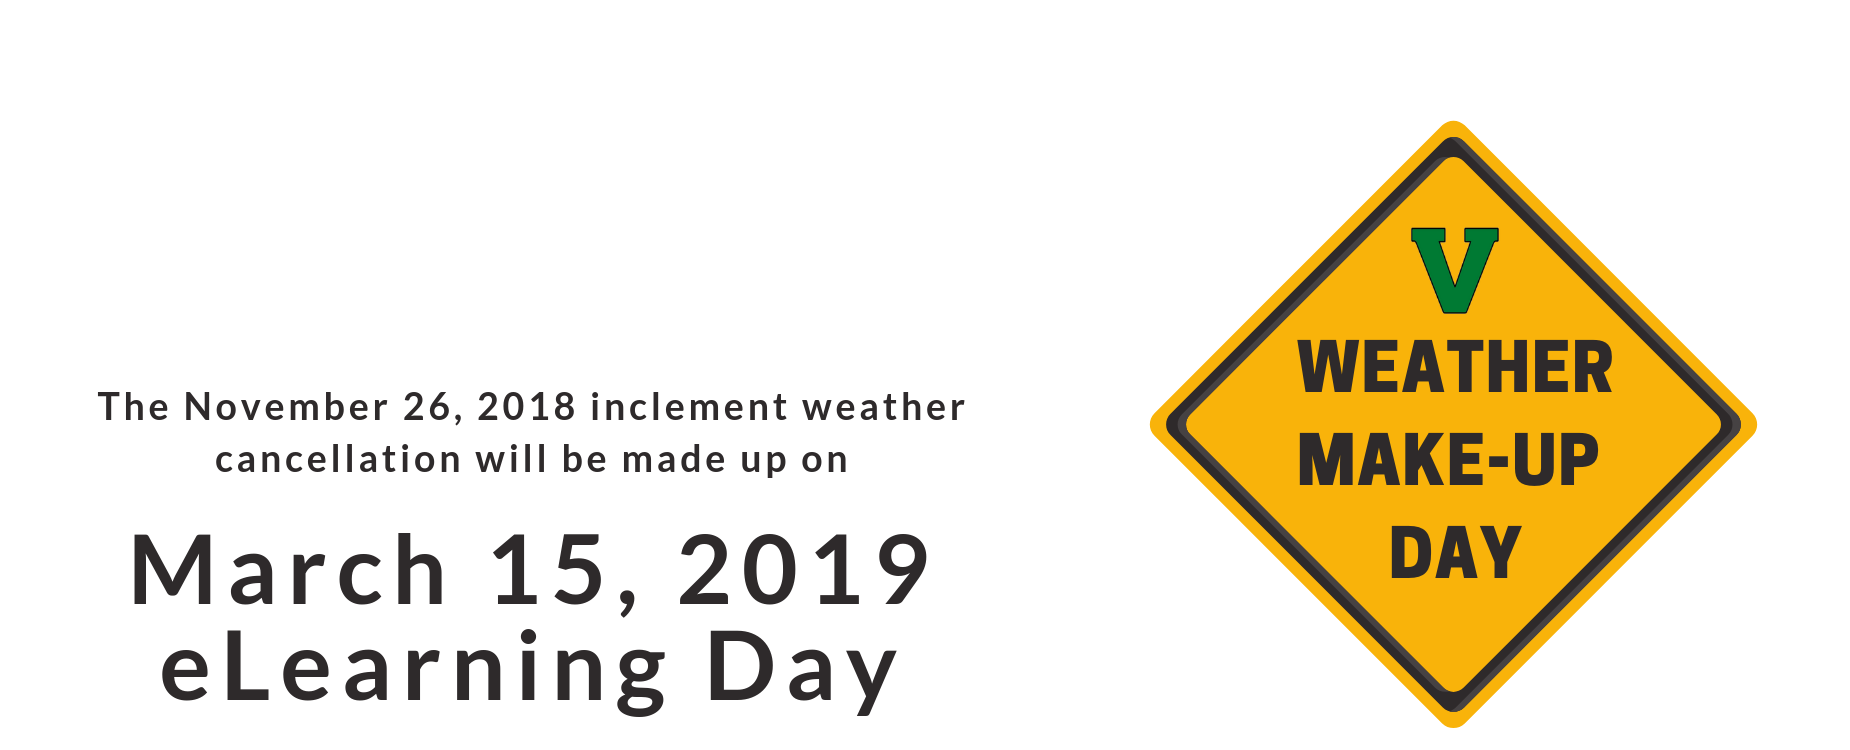 The November 26, 2018 inclement weather cancellation will be made up on March 19, 2019 eLearning Day